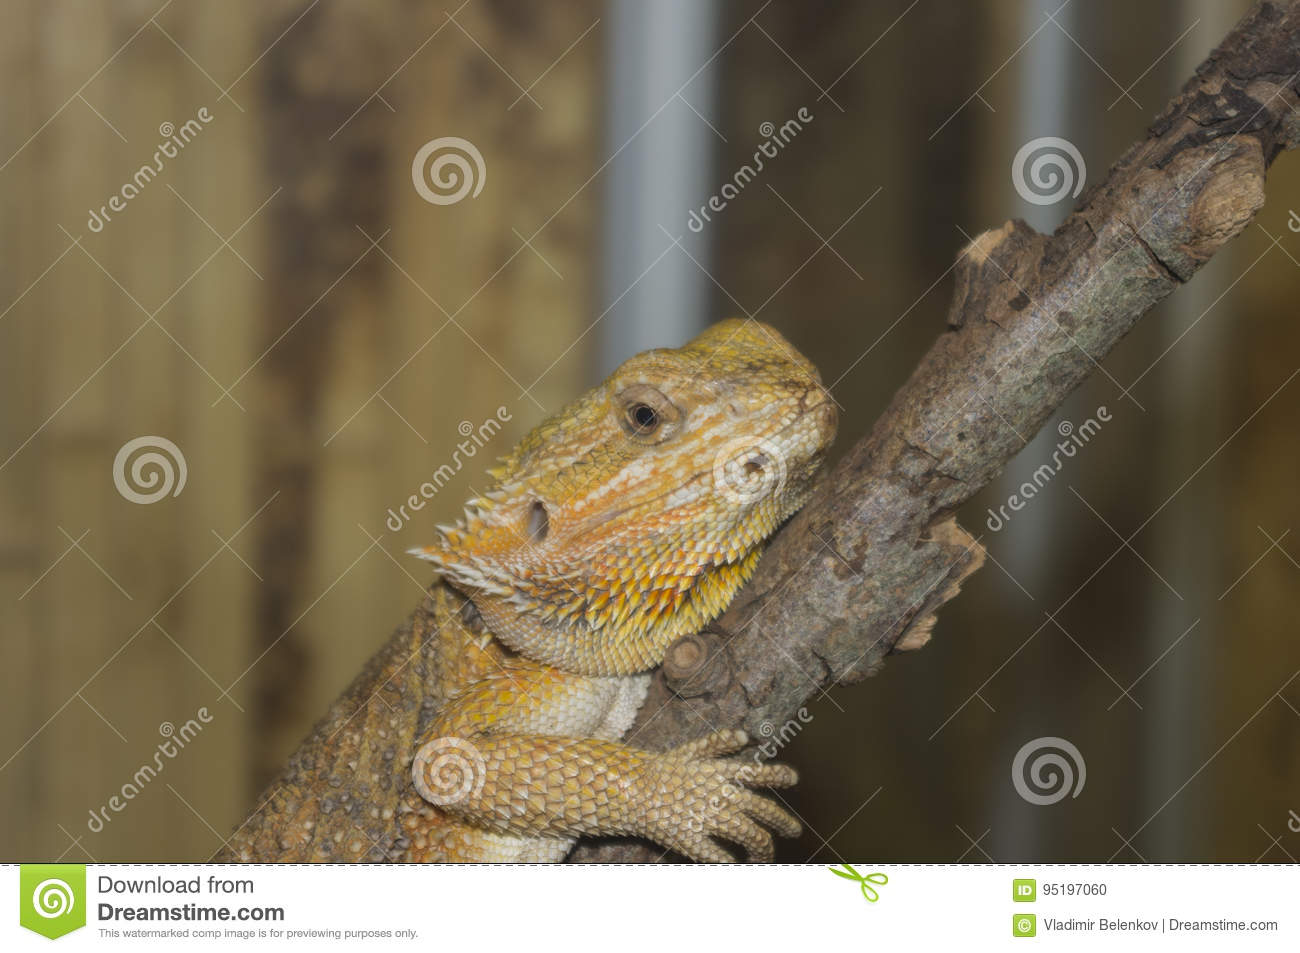 The Lizard sits on a branch